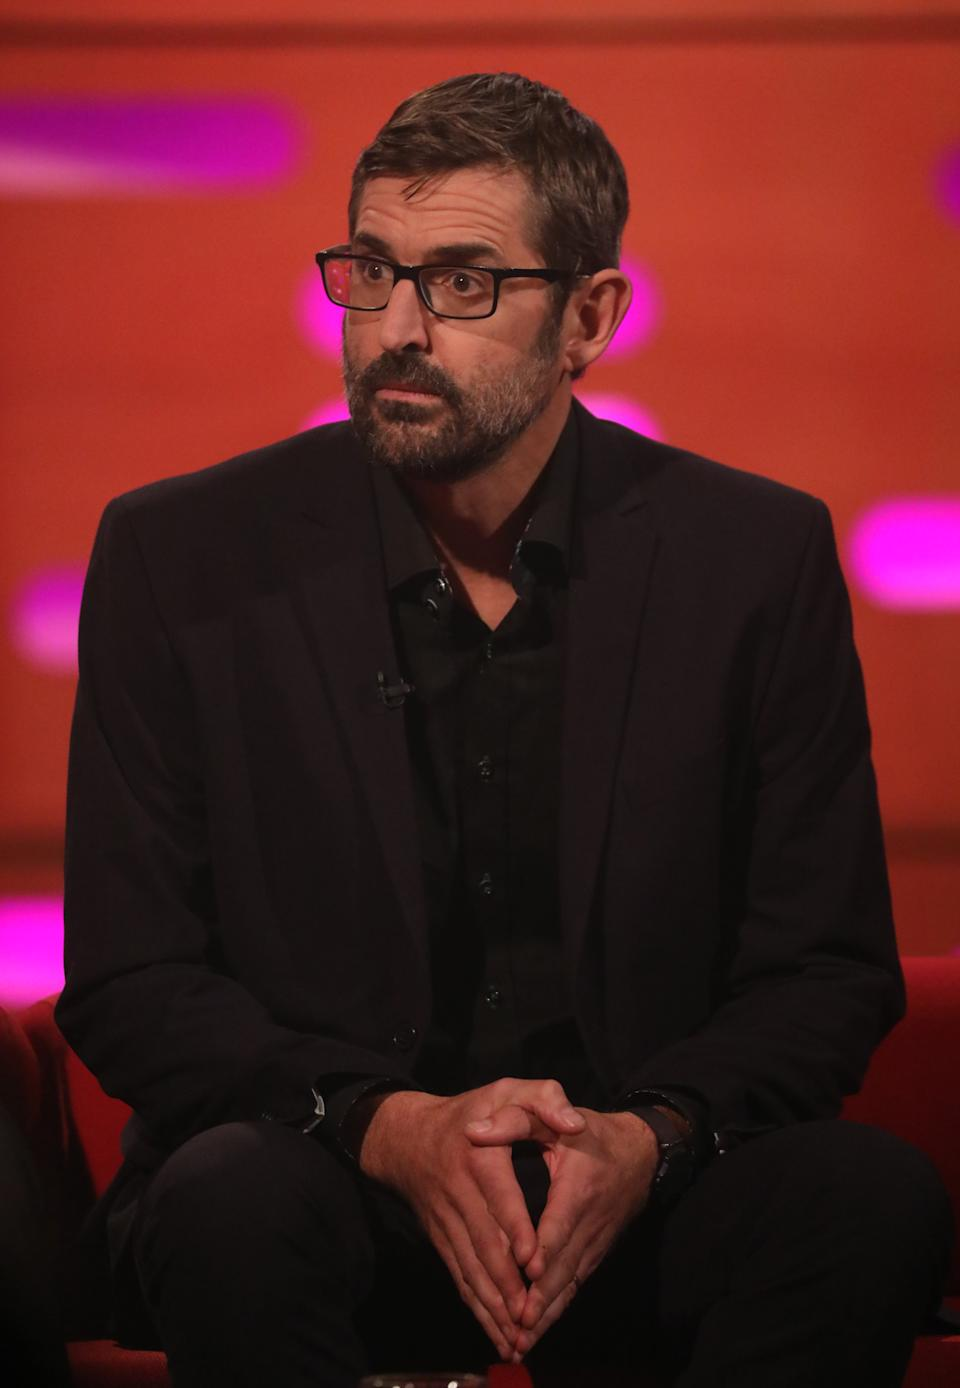 Louis Theroux during the filming for the Graham Norton Show at BBC Studioworks 6 Television Centre, Wood Lane, London, to be aired on BBC One on Friday evening. (Photo by Isabel Infantes/PA Images via Getty Images)